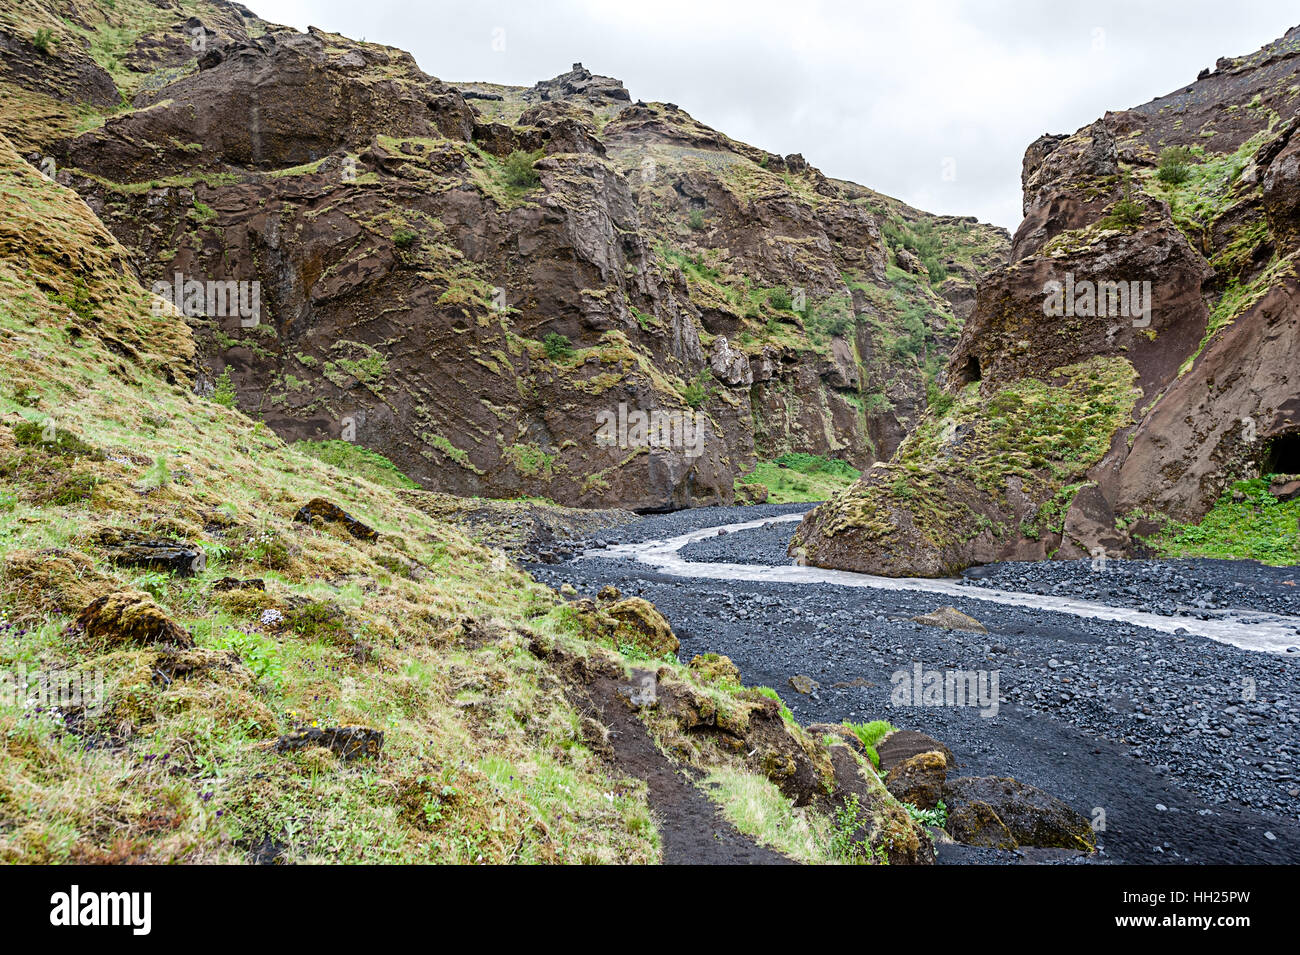 Thórsmörk is a mountain ridge in Iceland that was named after the Norse god Thor (Þór). - Stock Image